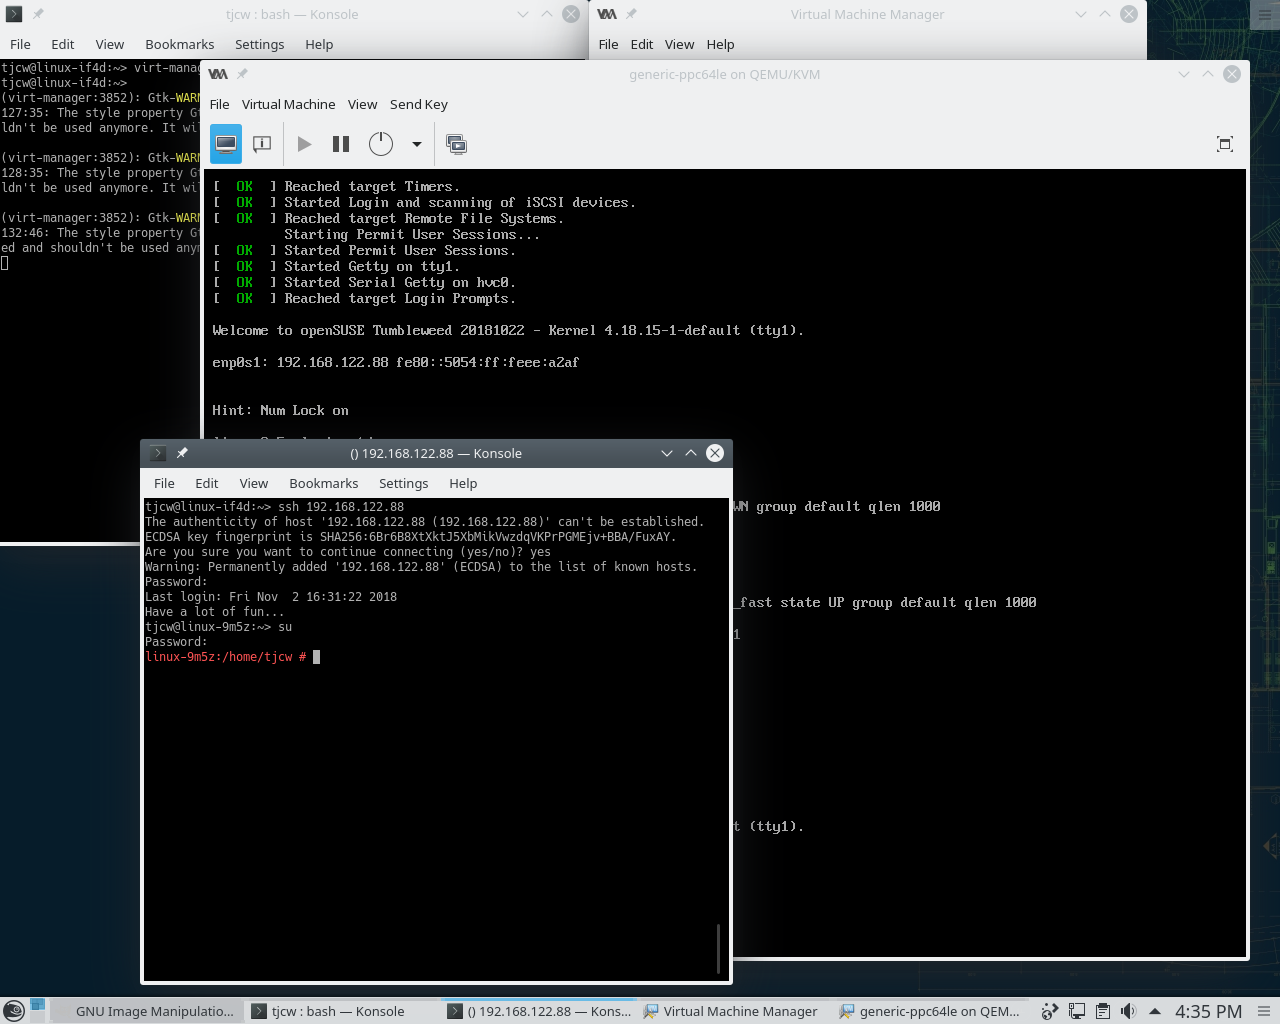 Setting up an x86 system to build and package software for